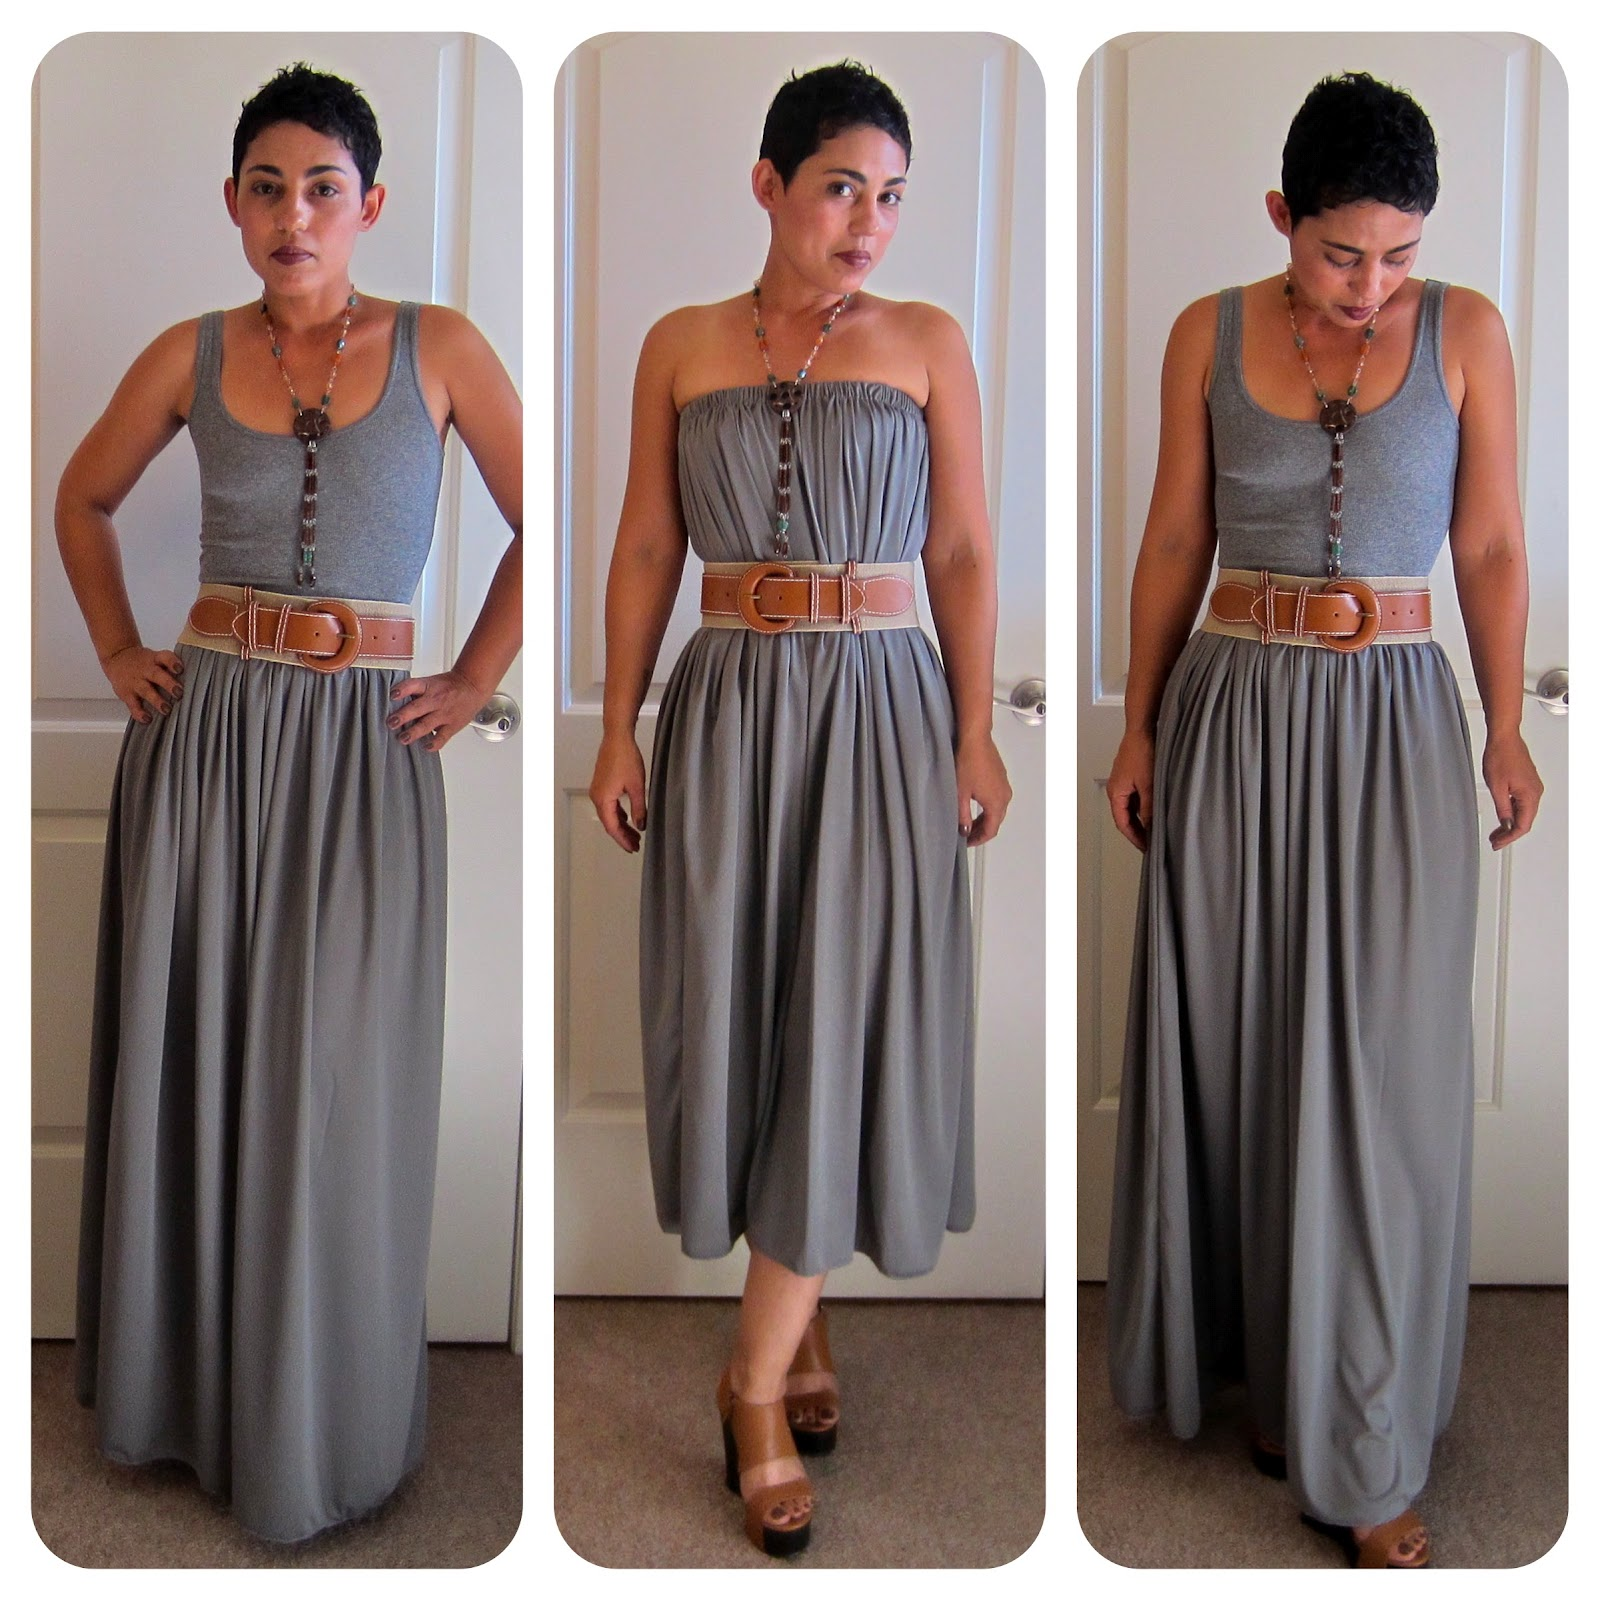 DIY Tutorial: Maxi Skirt! Start to Finish Video |Fashion ...